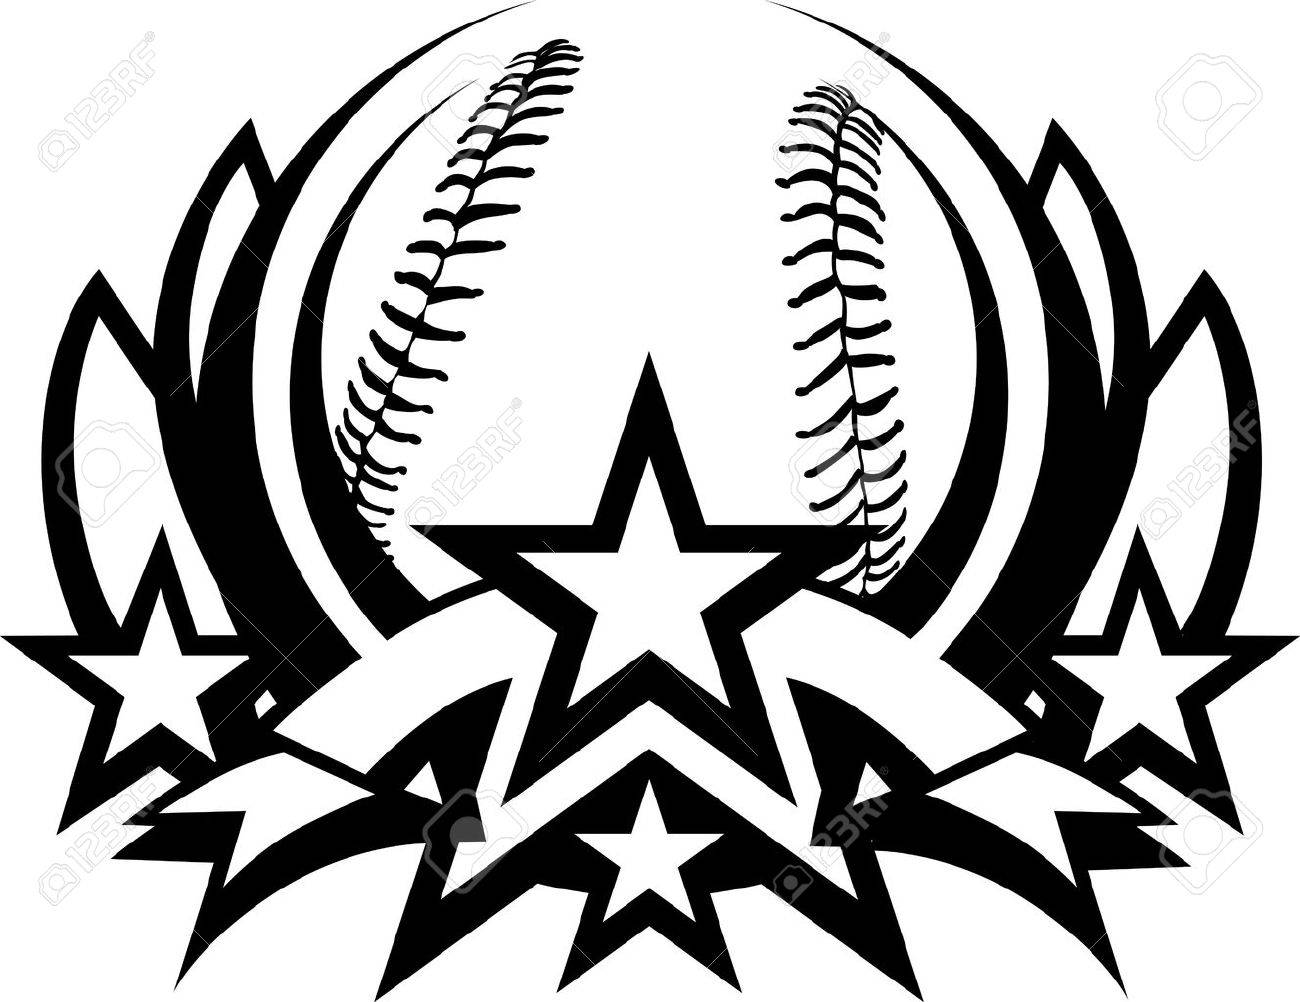 baseball graphic template with stars royalty free cliparts vectors rh 123rf com basketball graphics baseball graphic shirts